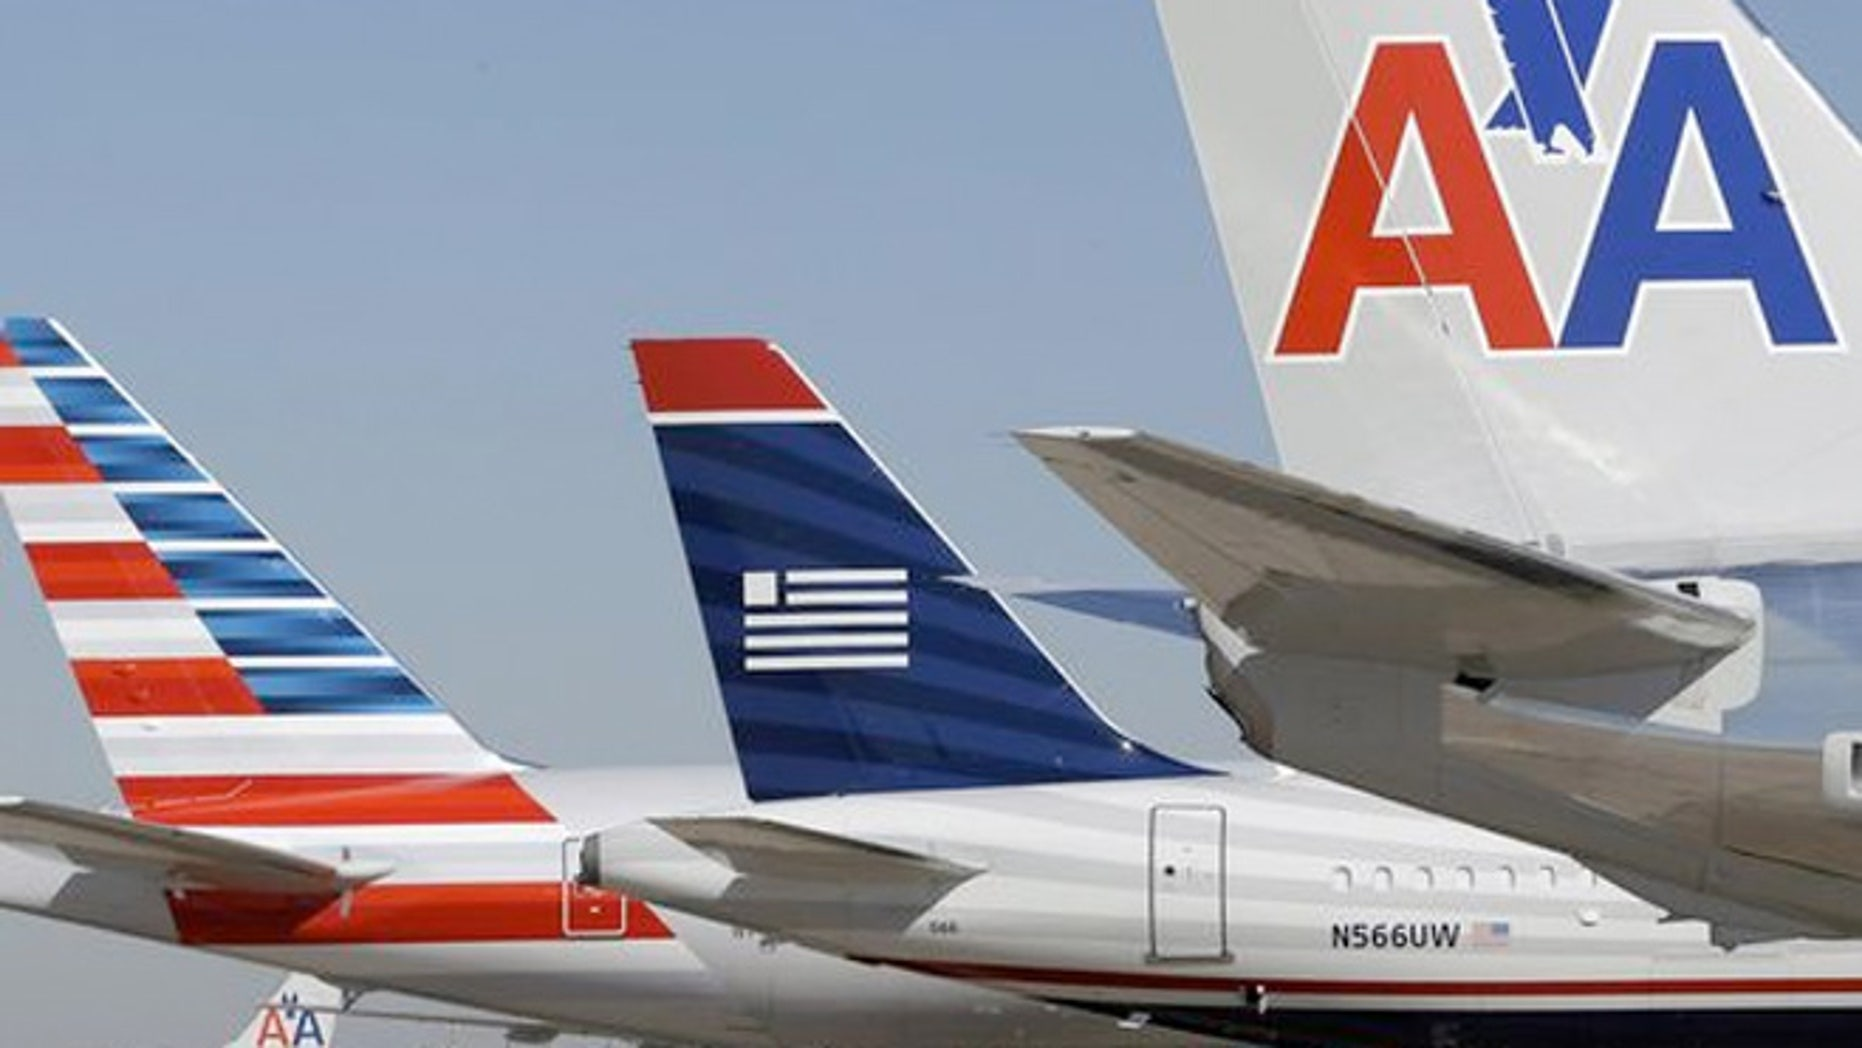 US Airways and American Airlines planes at Dallas/Fort Worth International Airport.